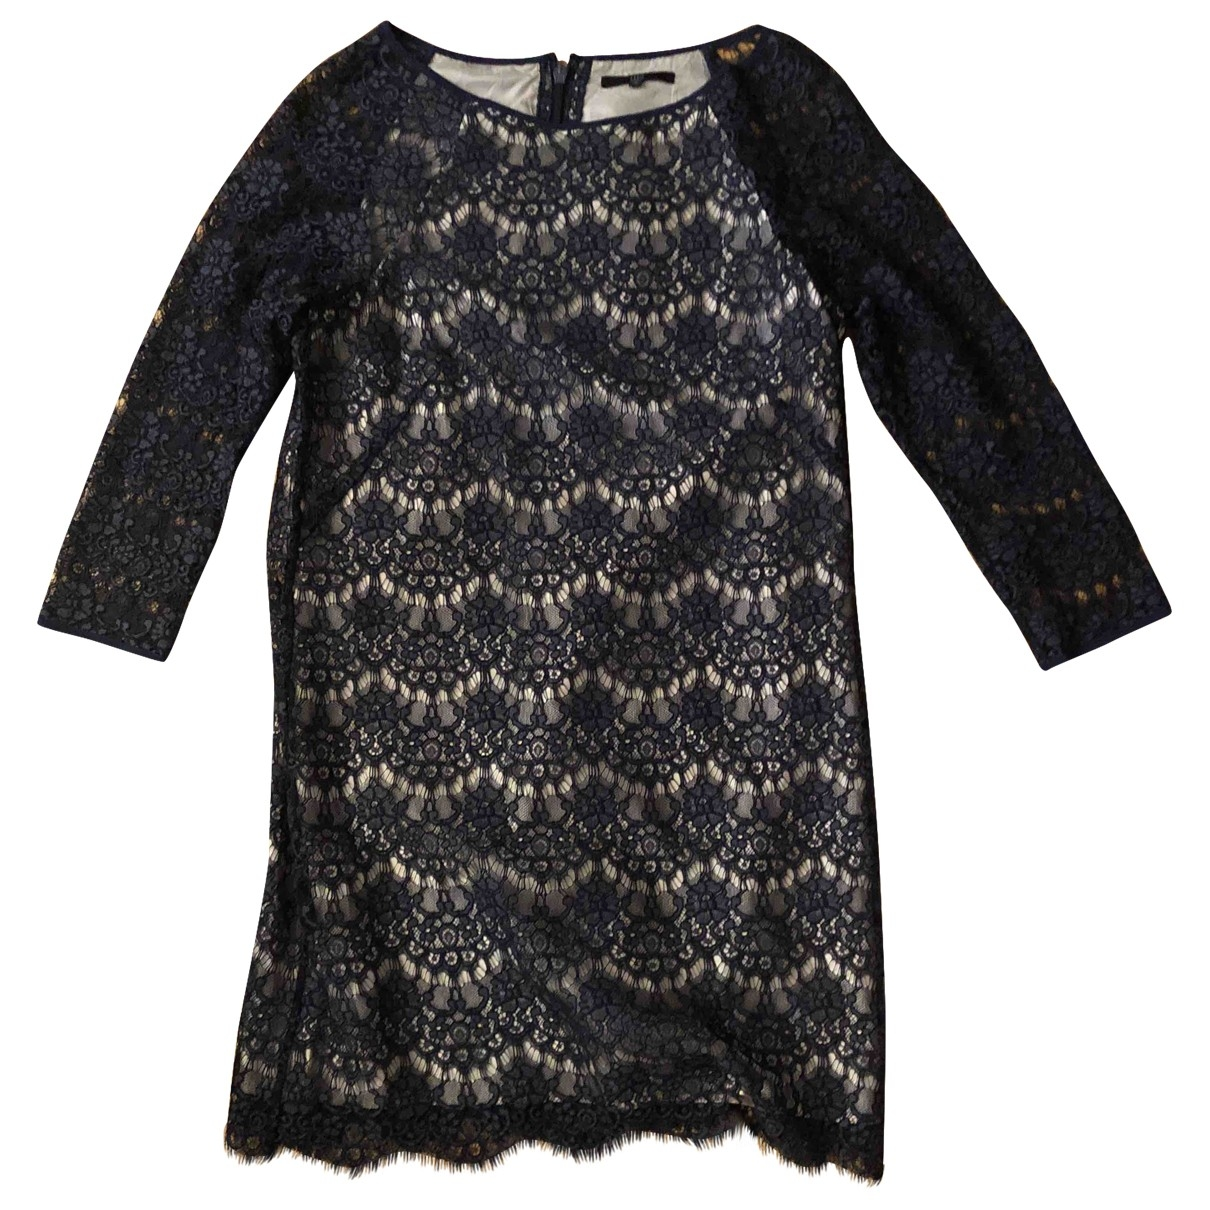 Tibi \N Blue Lace dress for Women 10 US